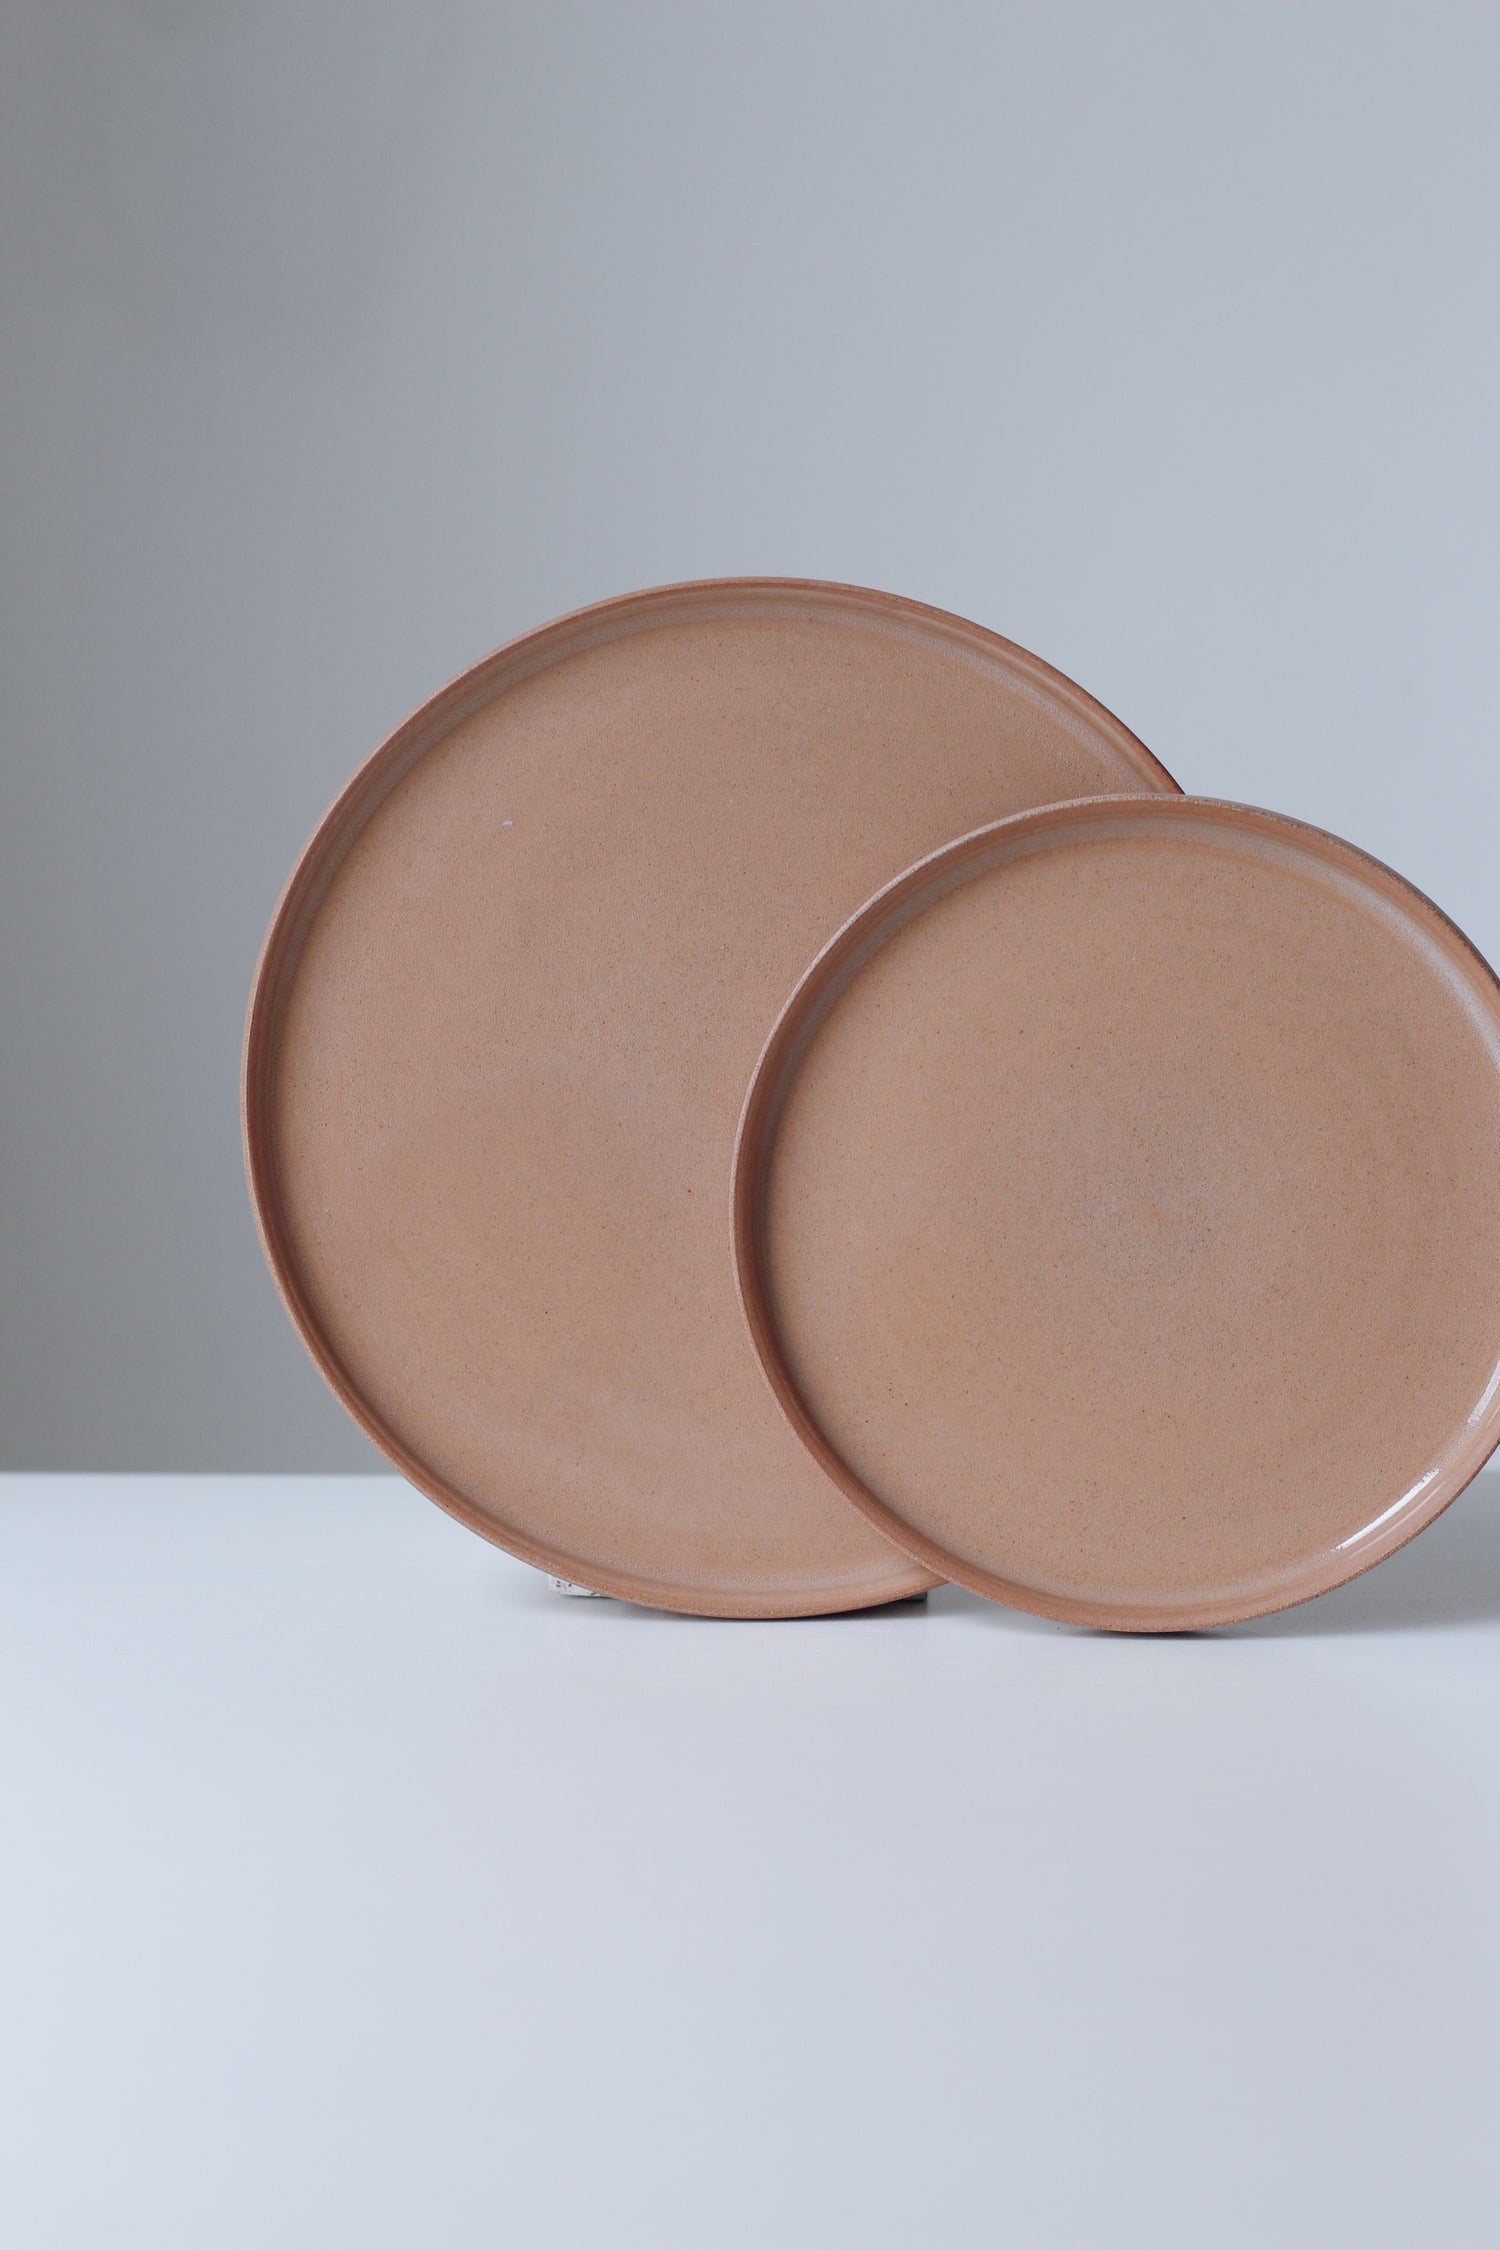 Image of Dune Serving Tray